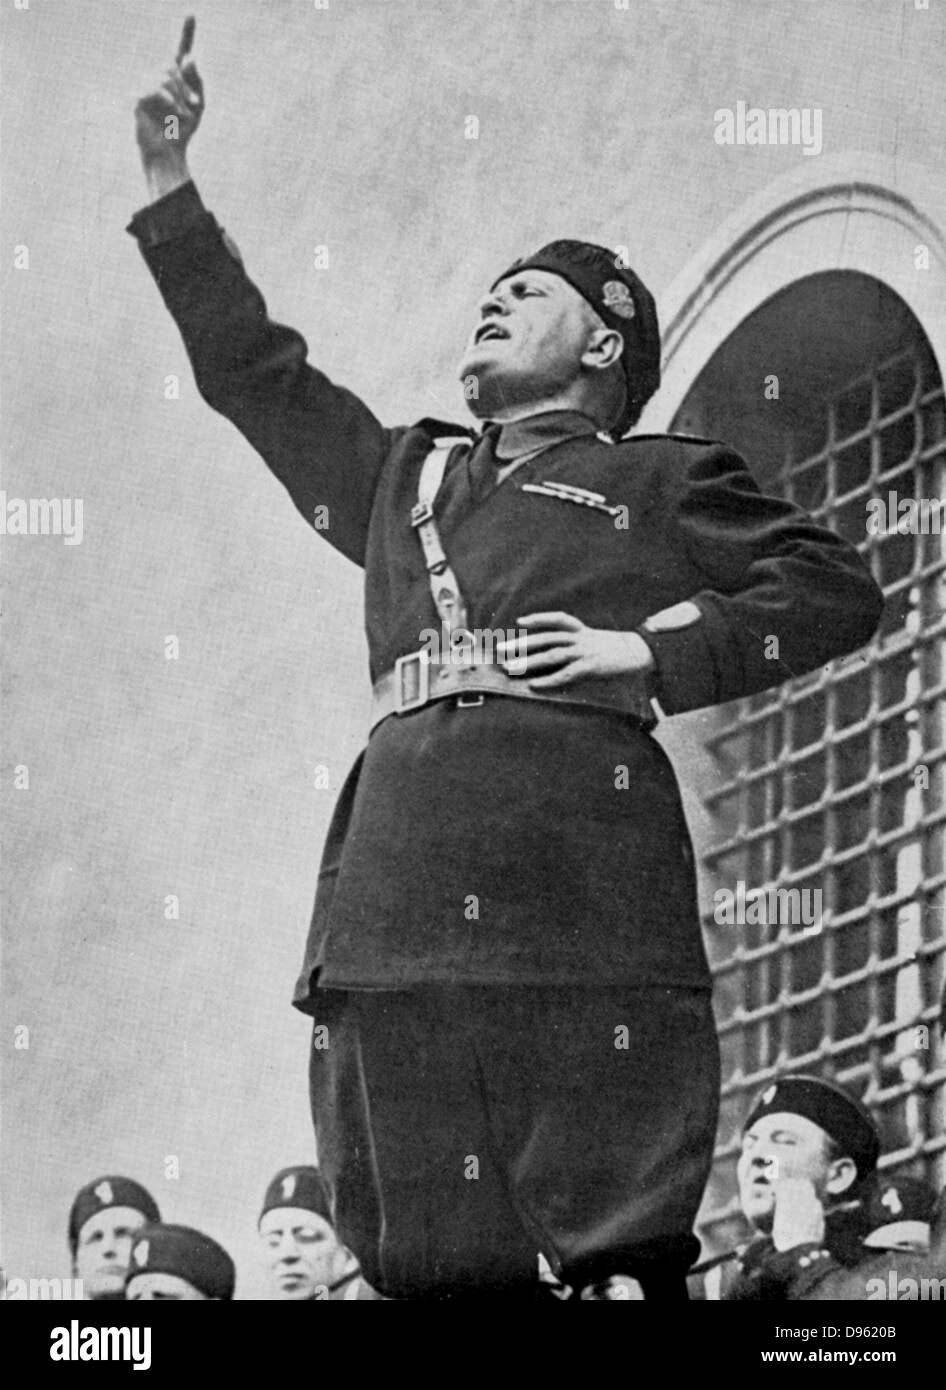 Benito Mussolini (1883-1945) - 'Il Duce' - Italian fascist dictator  addressing fascist youths on the occasion of the calling up